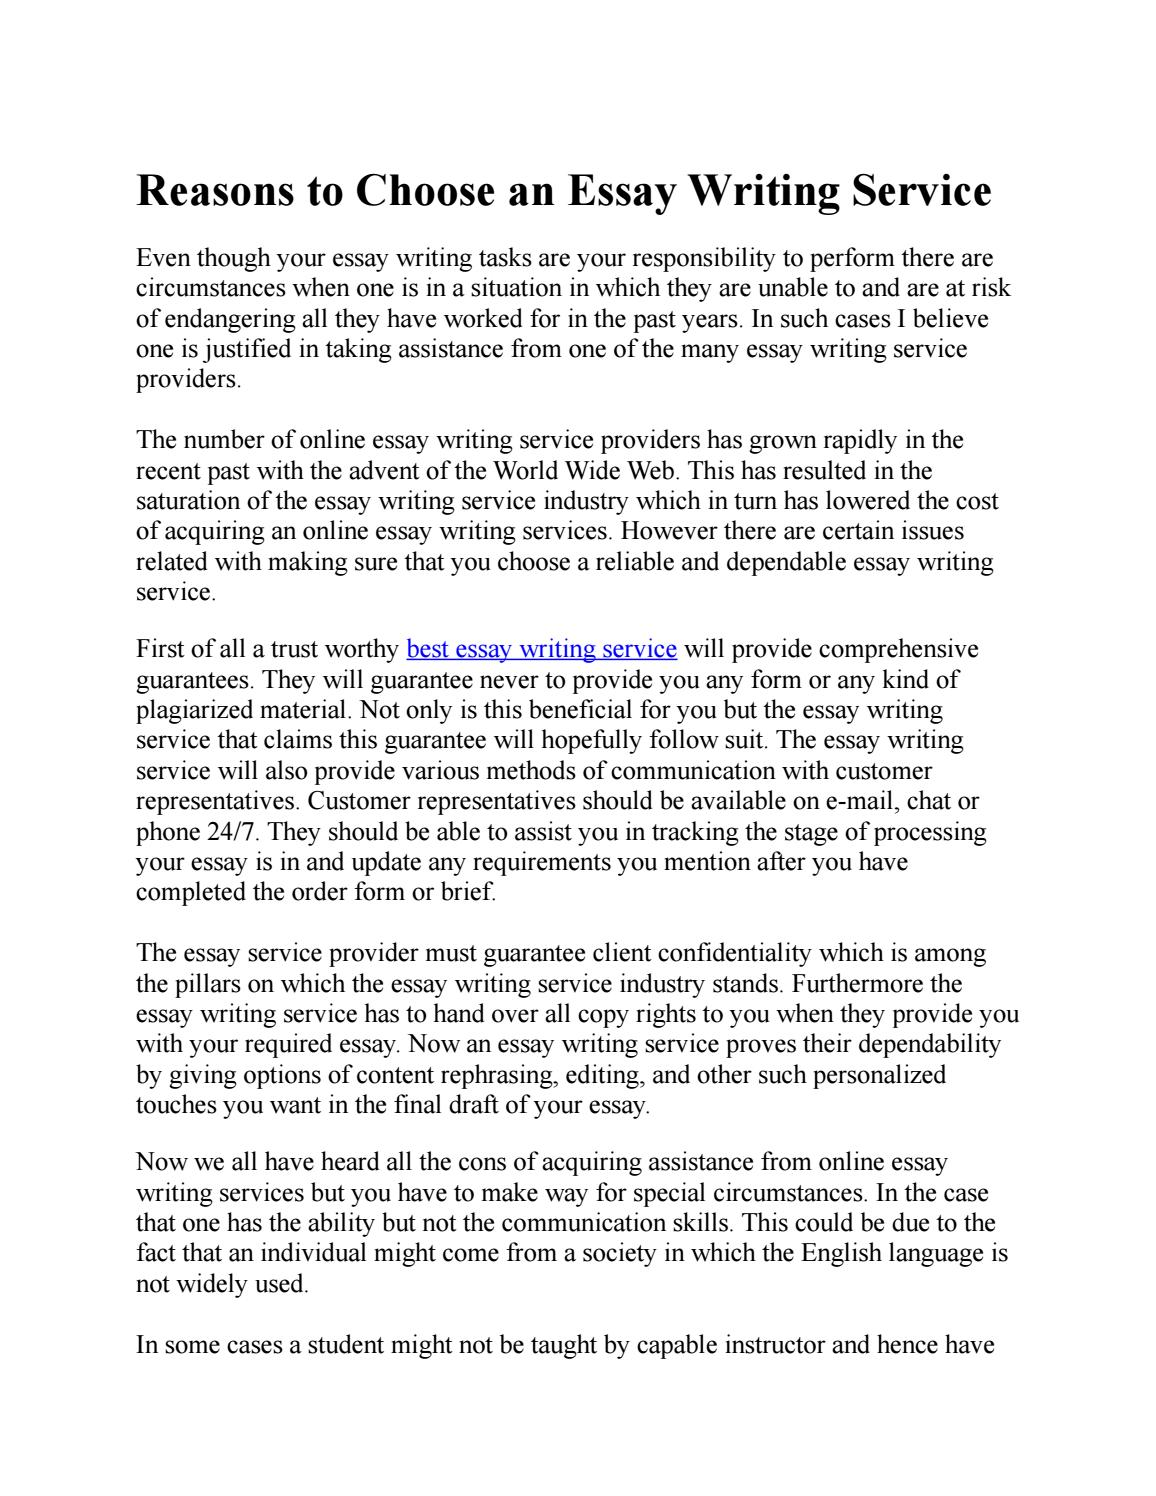 Original essay writing service